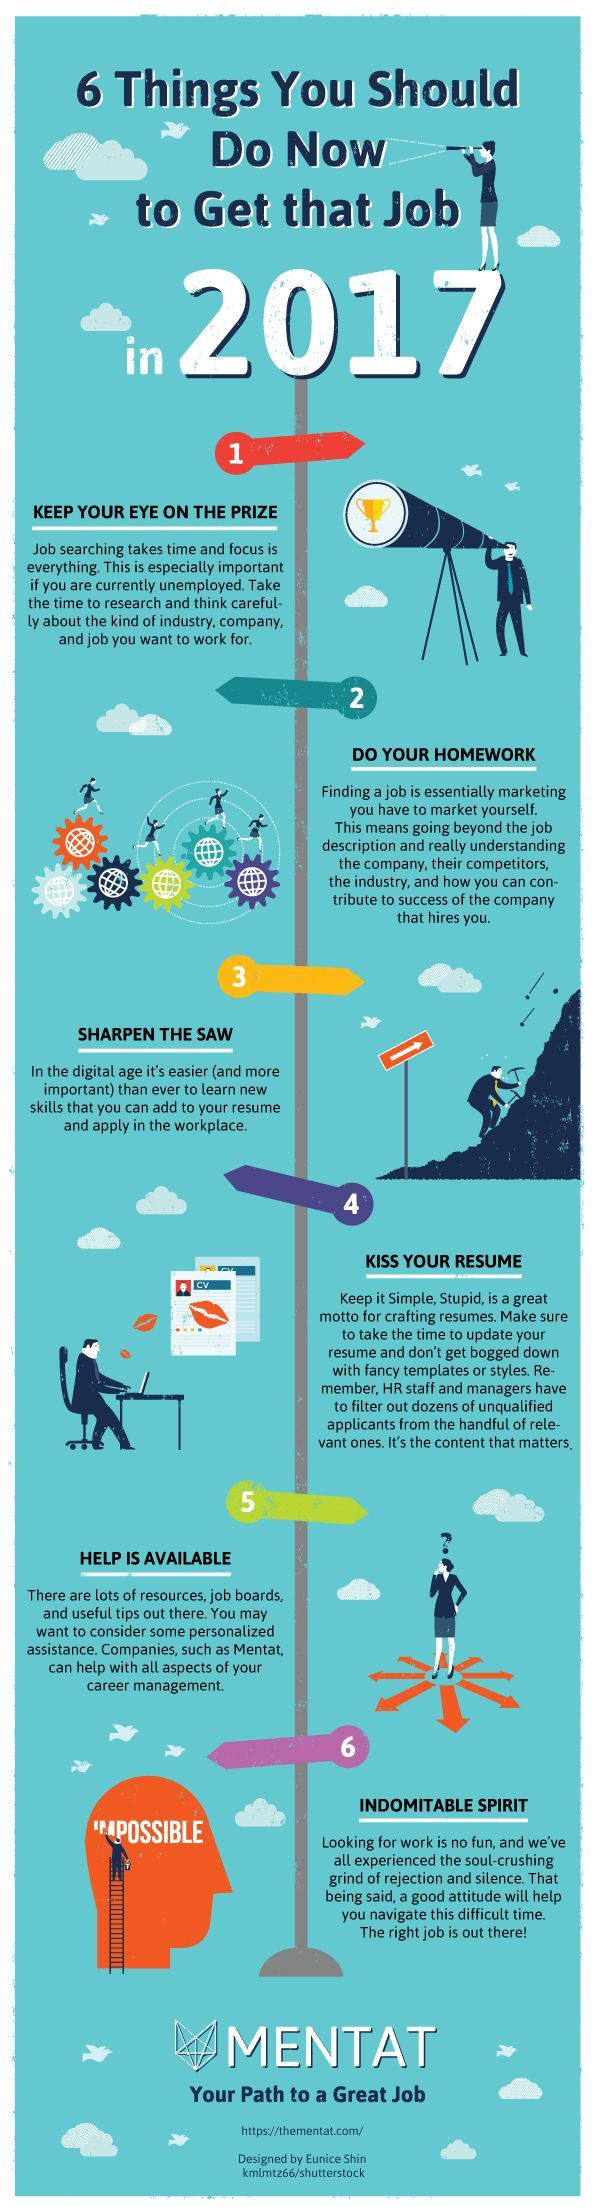 Resume Changing Careers 6 Things You Should Do Now To Get That Job In 2017  Infographic .